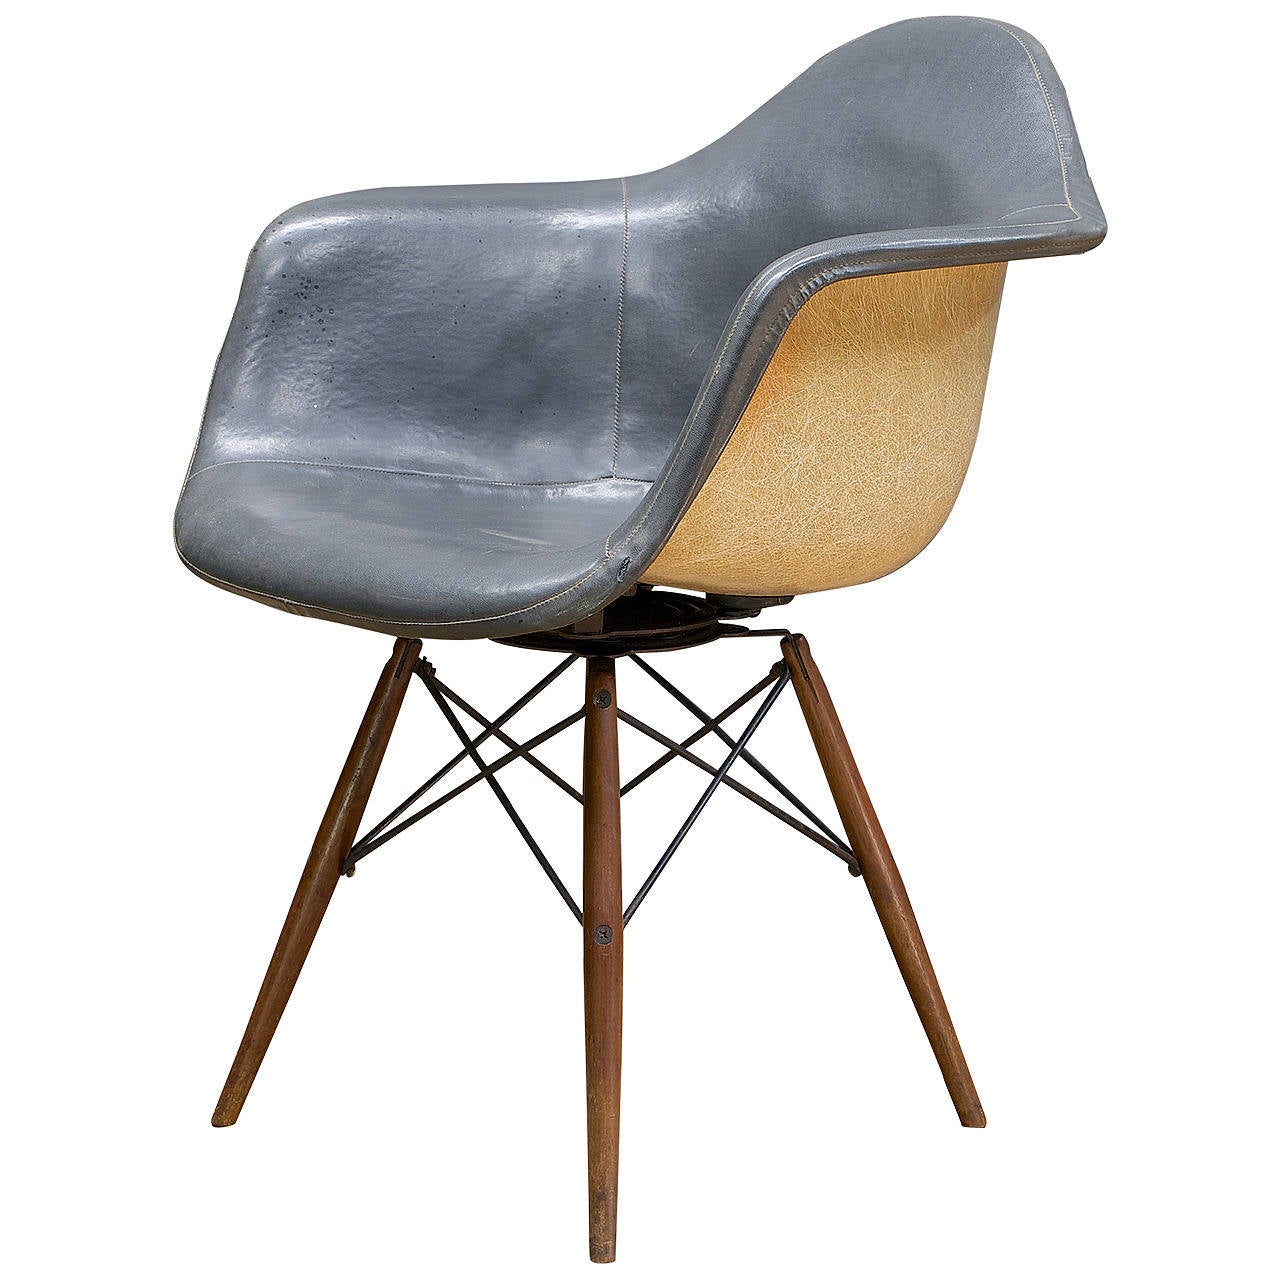 swivel chair wooden legs dining room chairs nz charcoal and walnut charles eames paw dowel leg